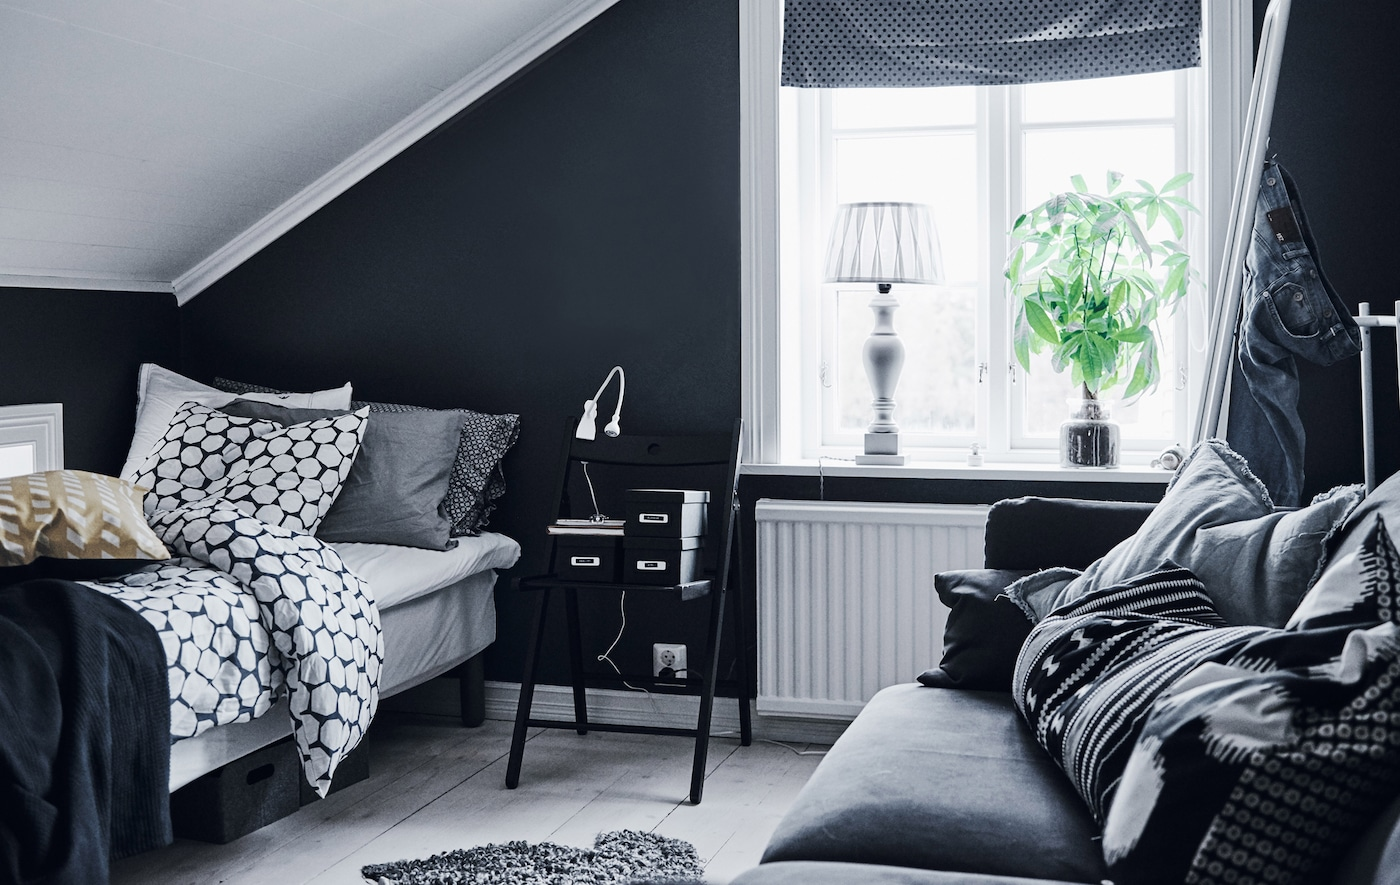 Ordinaire Ideas To Create A Cool Yet Practical Teen Bedroom   IKEA